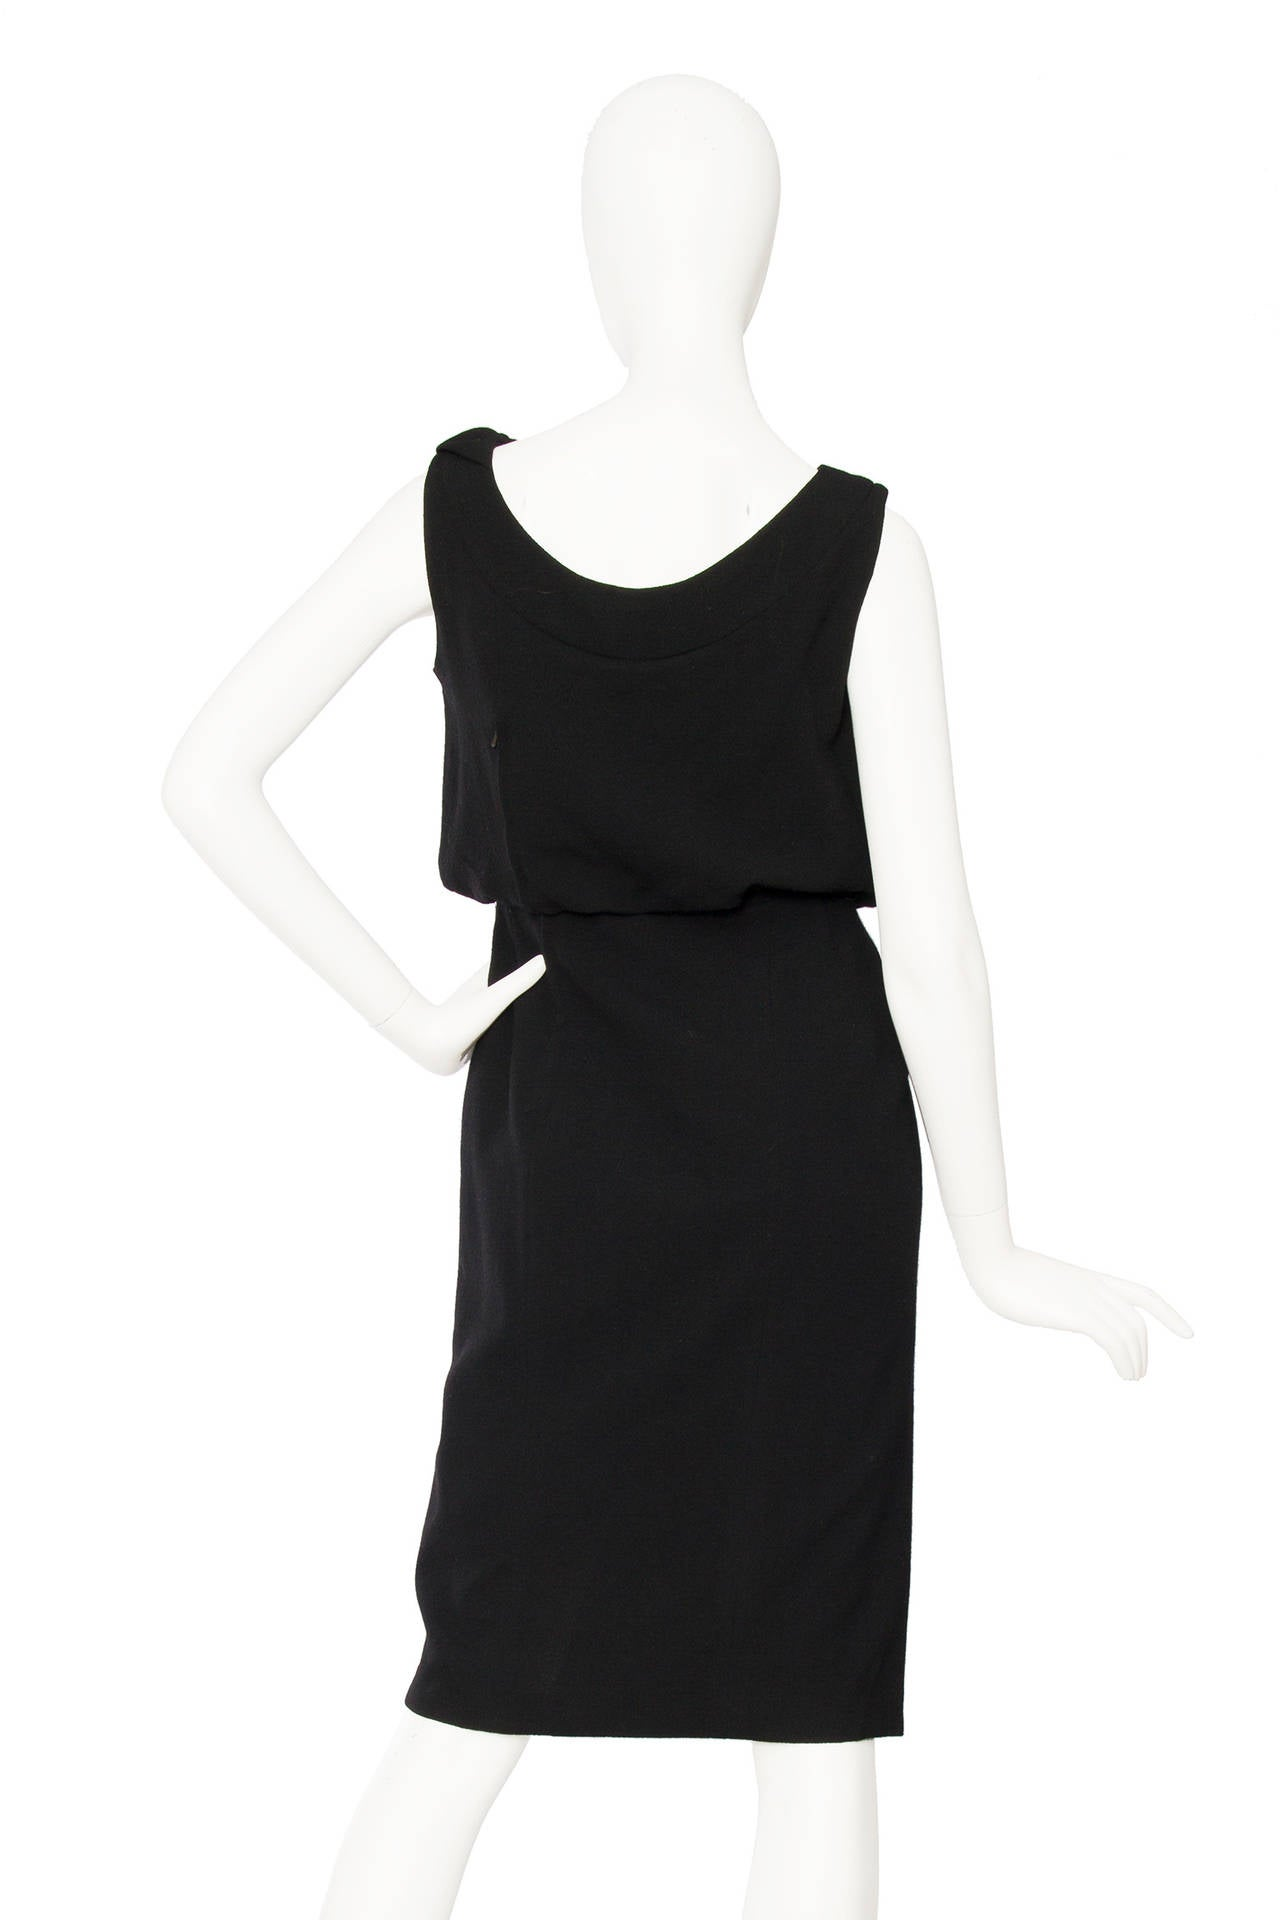 1960s Pierre Balmain Little Black Dress 4